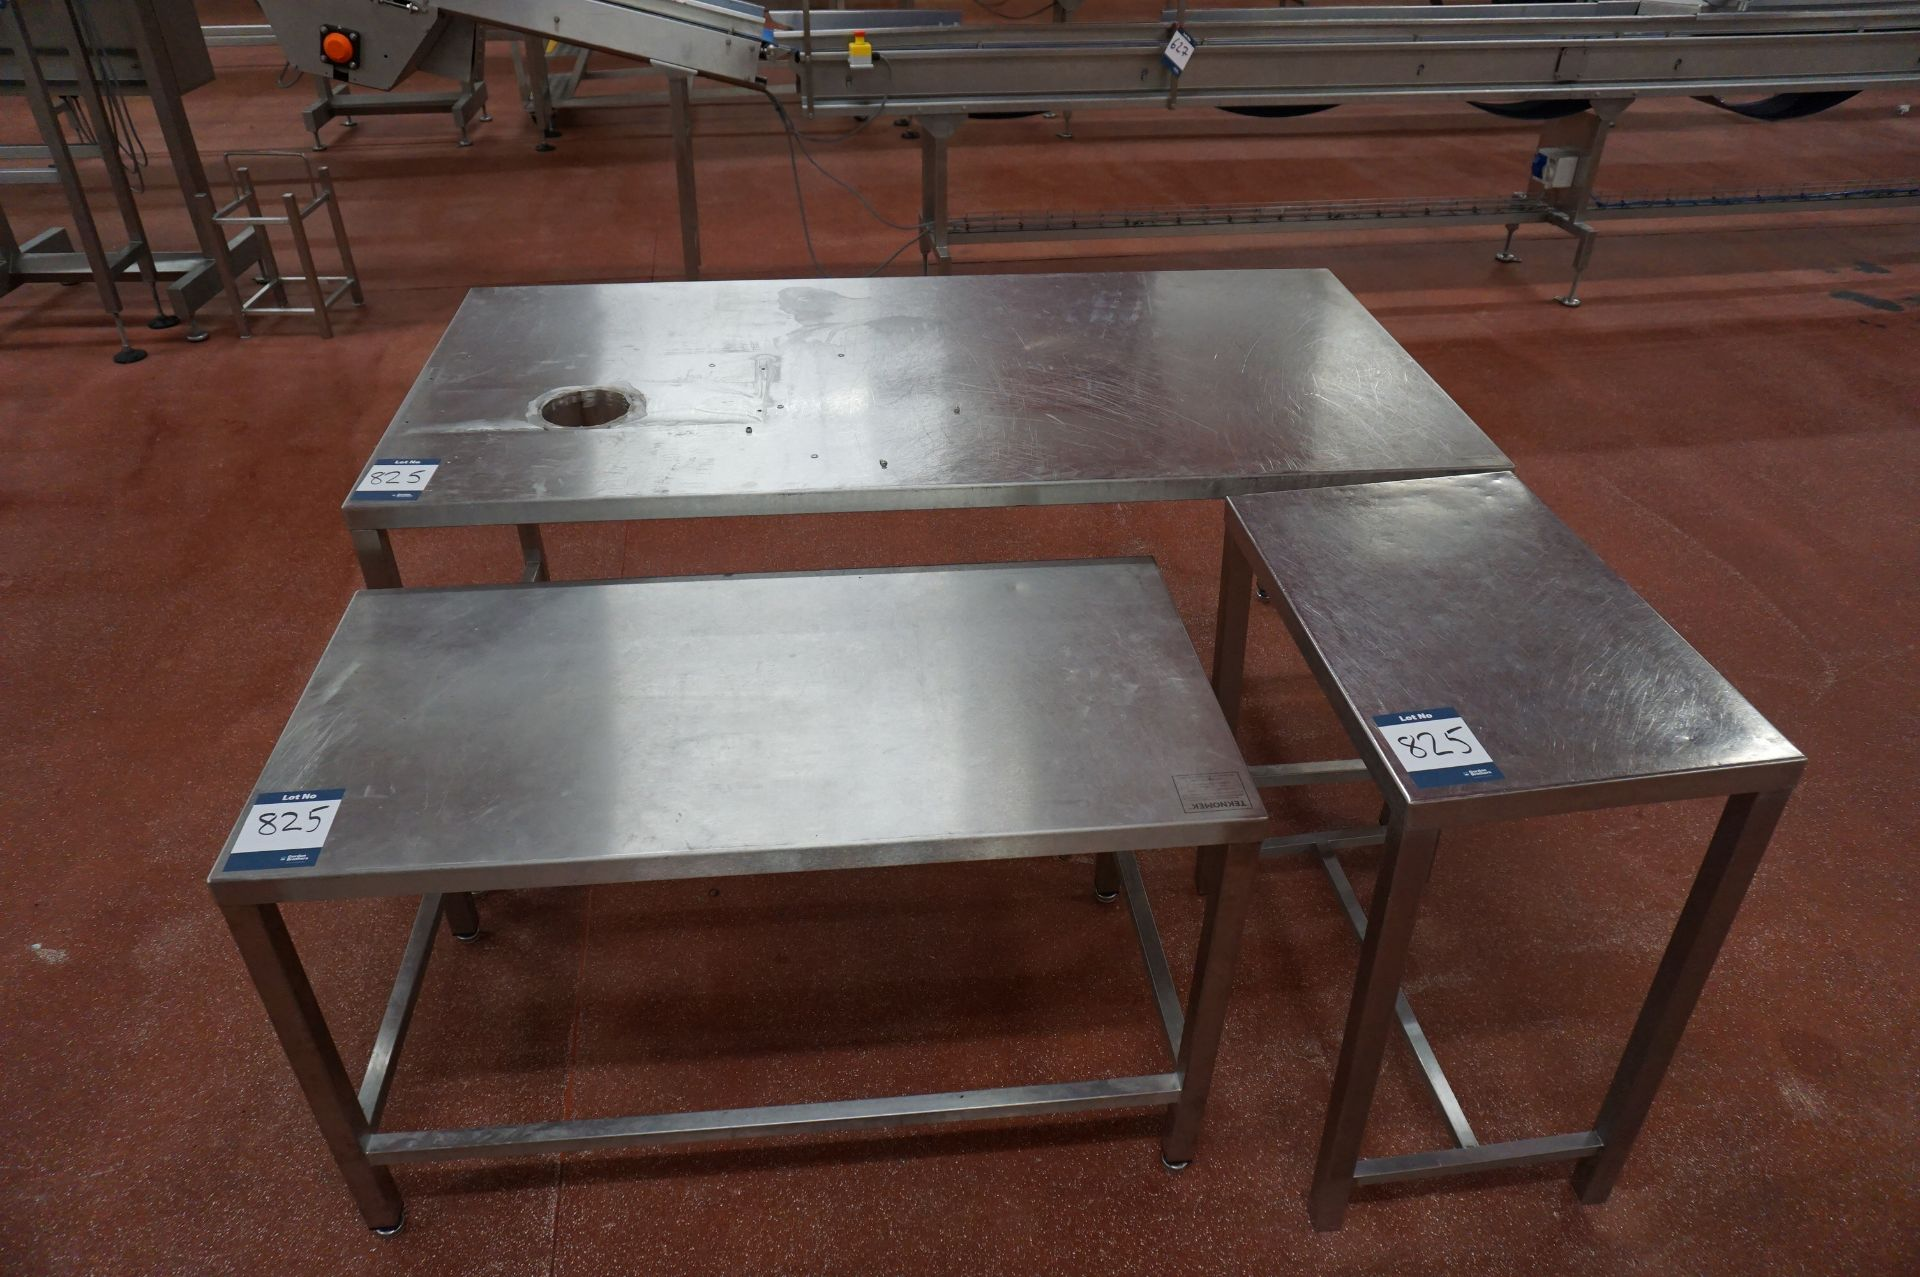 Lot 825 - 3 x Various stainless steel prep tables, as lotted